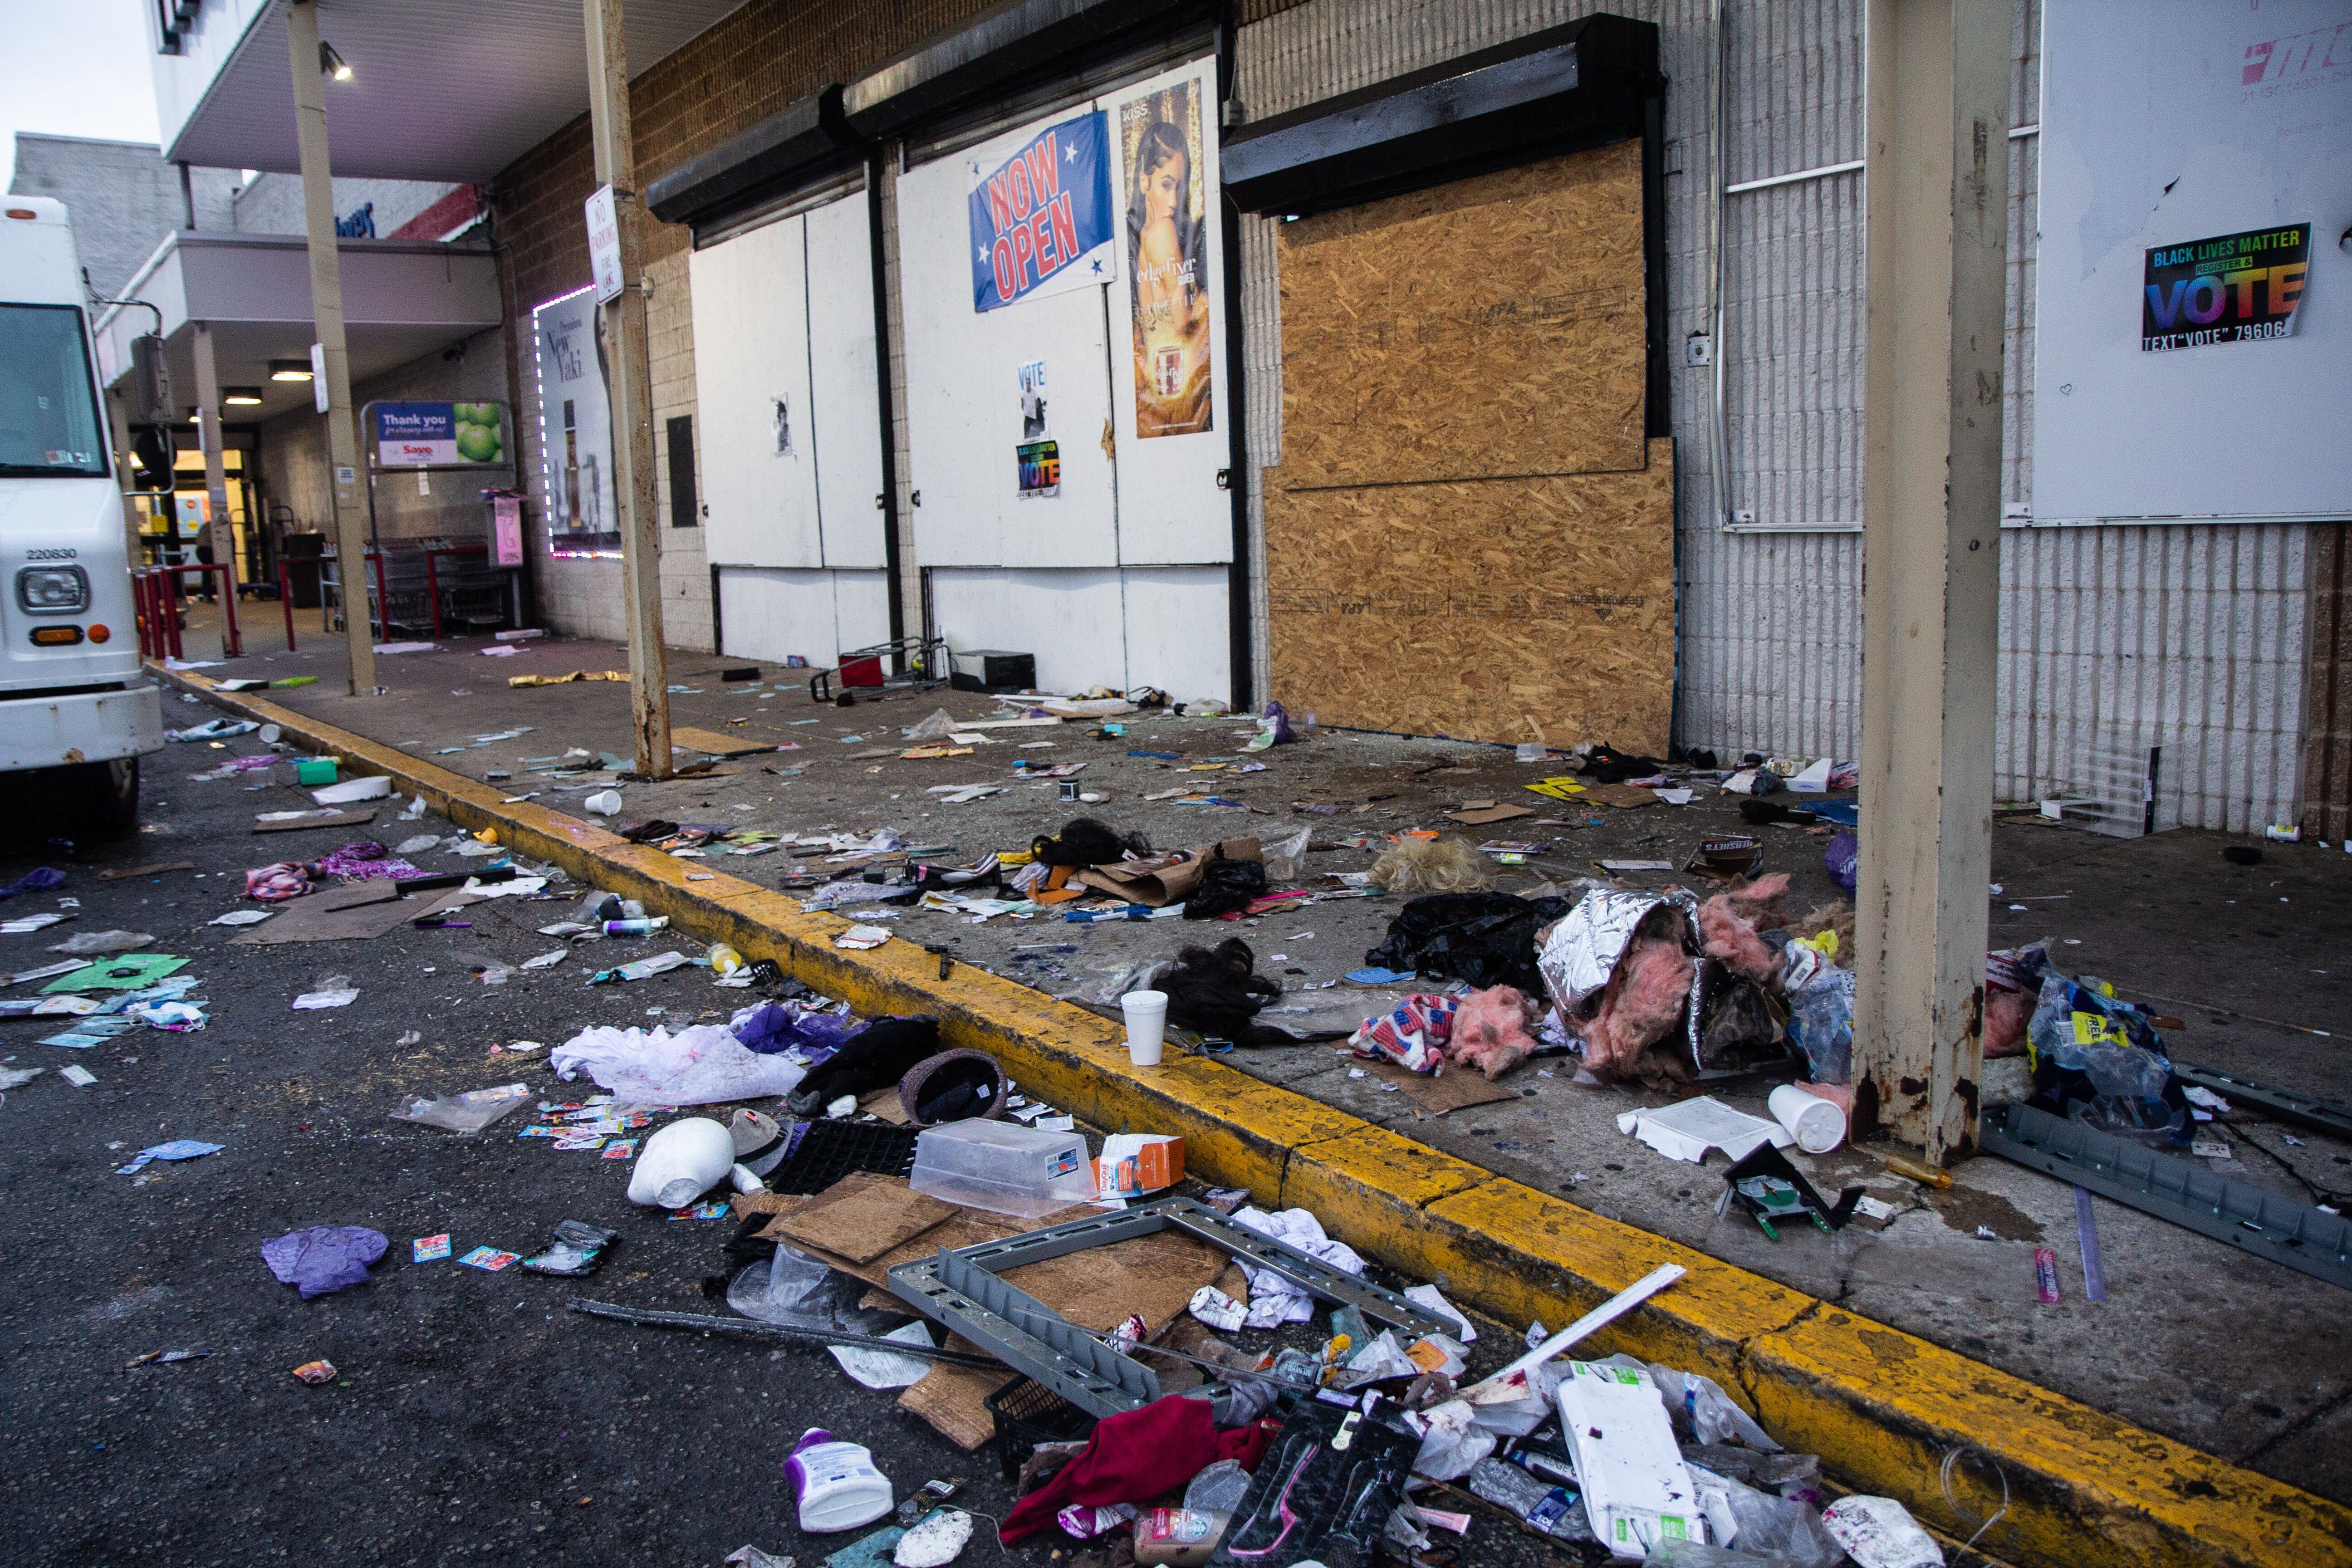 A shopping center at 57th and Vine streets was looted Monday night after Philadelphia police shot and killed Walter Wallace Jr. in West Philadelphia